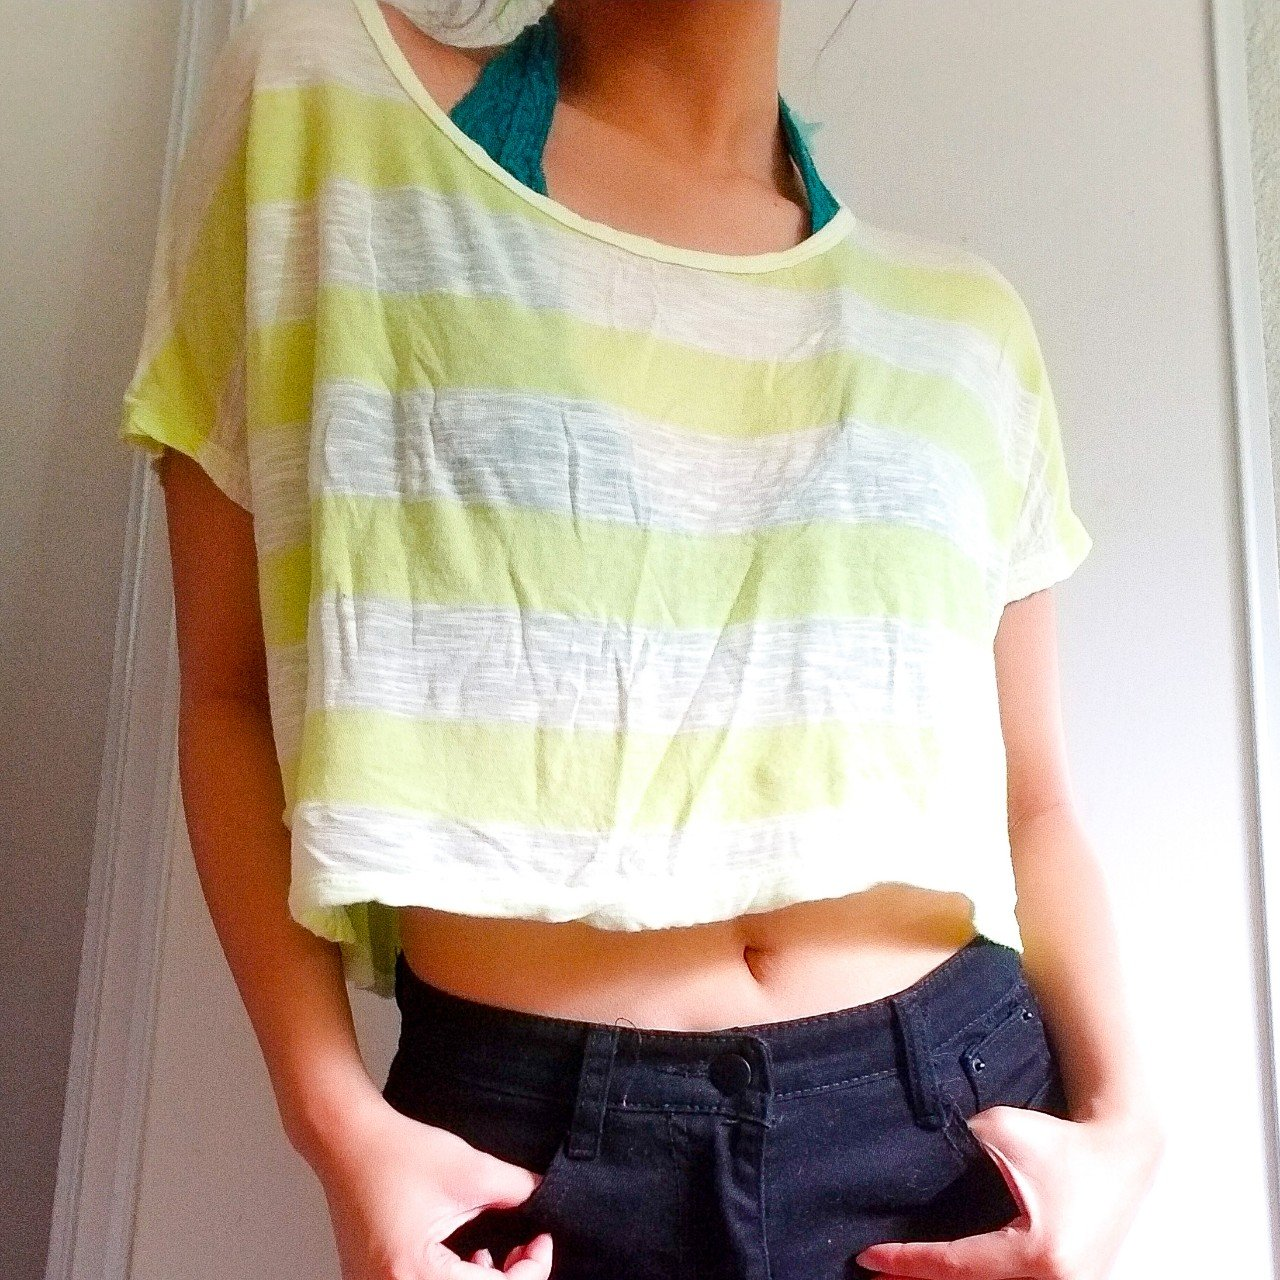 c9b58779e2130 Aeropostale neon see through crop top! Soft and stretchy to - Depop